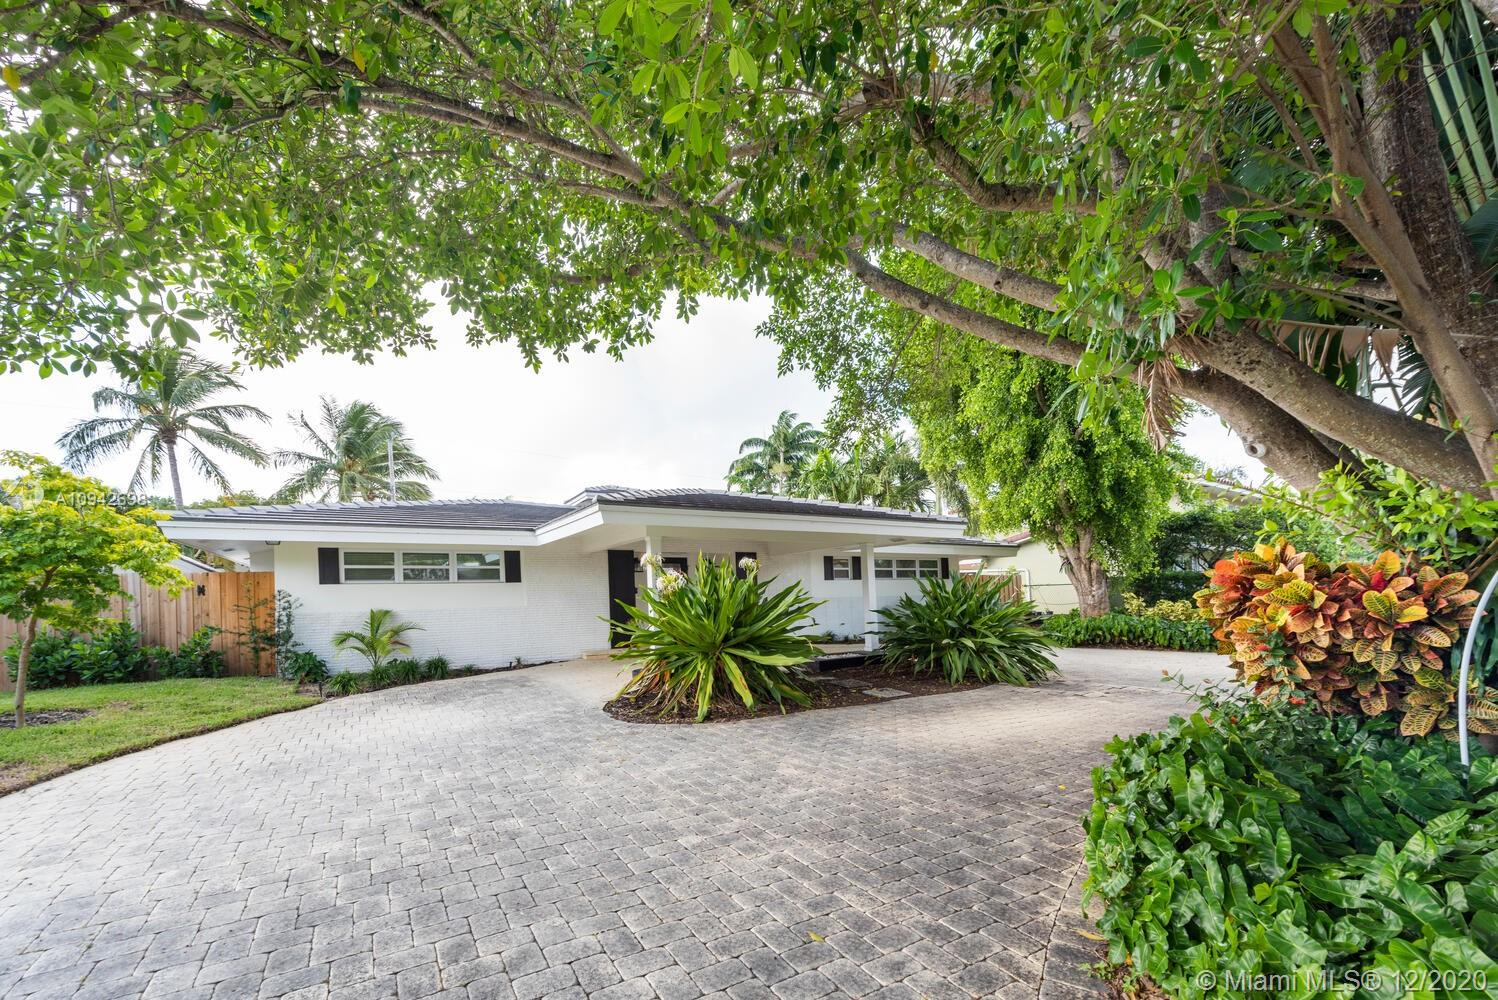 2356 NE 8th St Property Photo - Fort Lauderdale, FL real estate listing